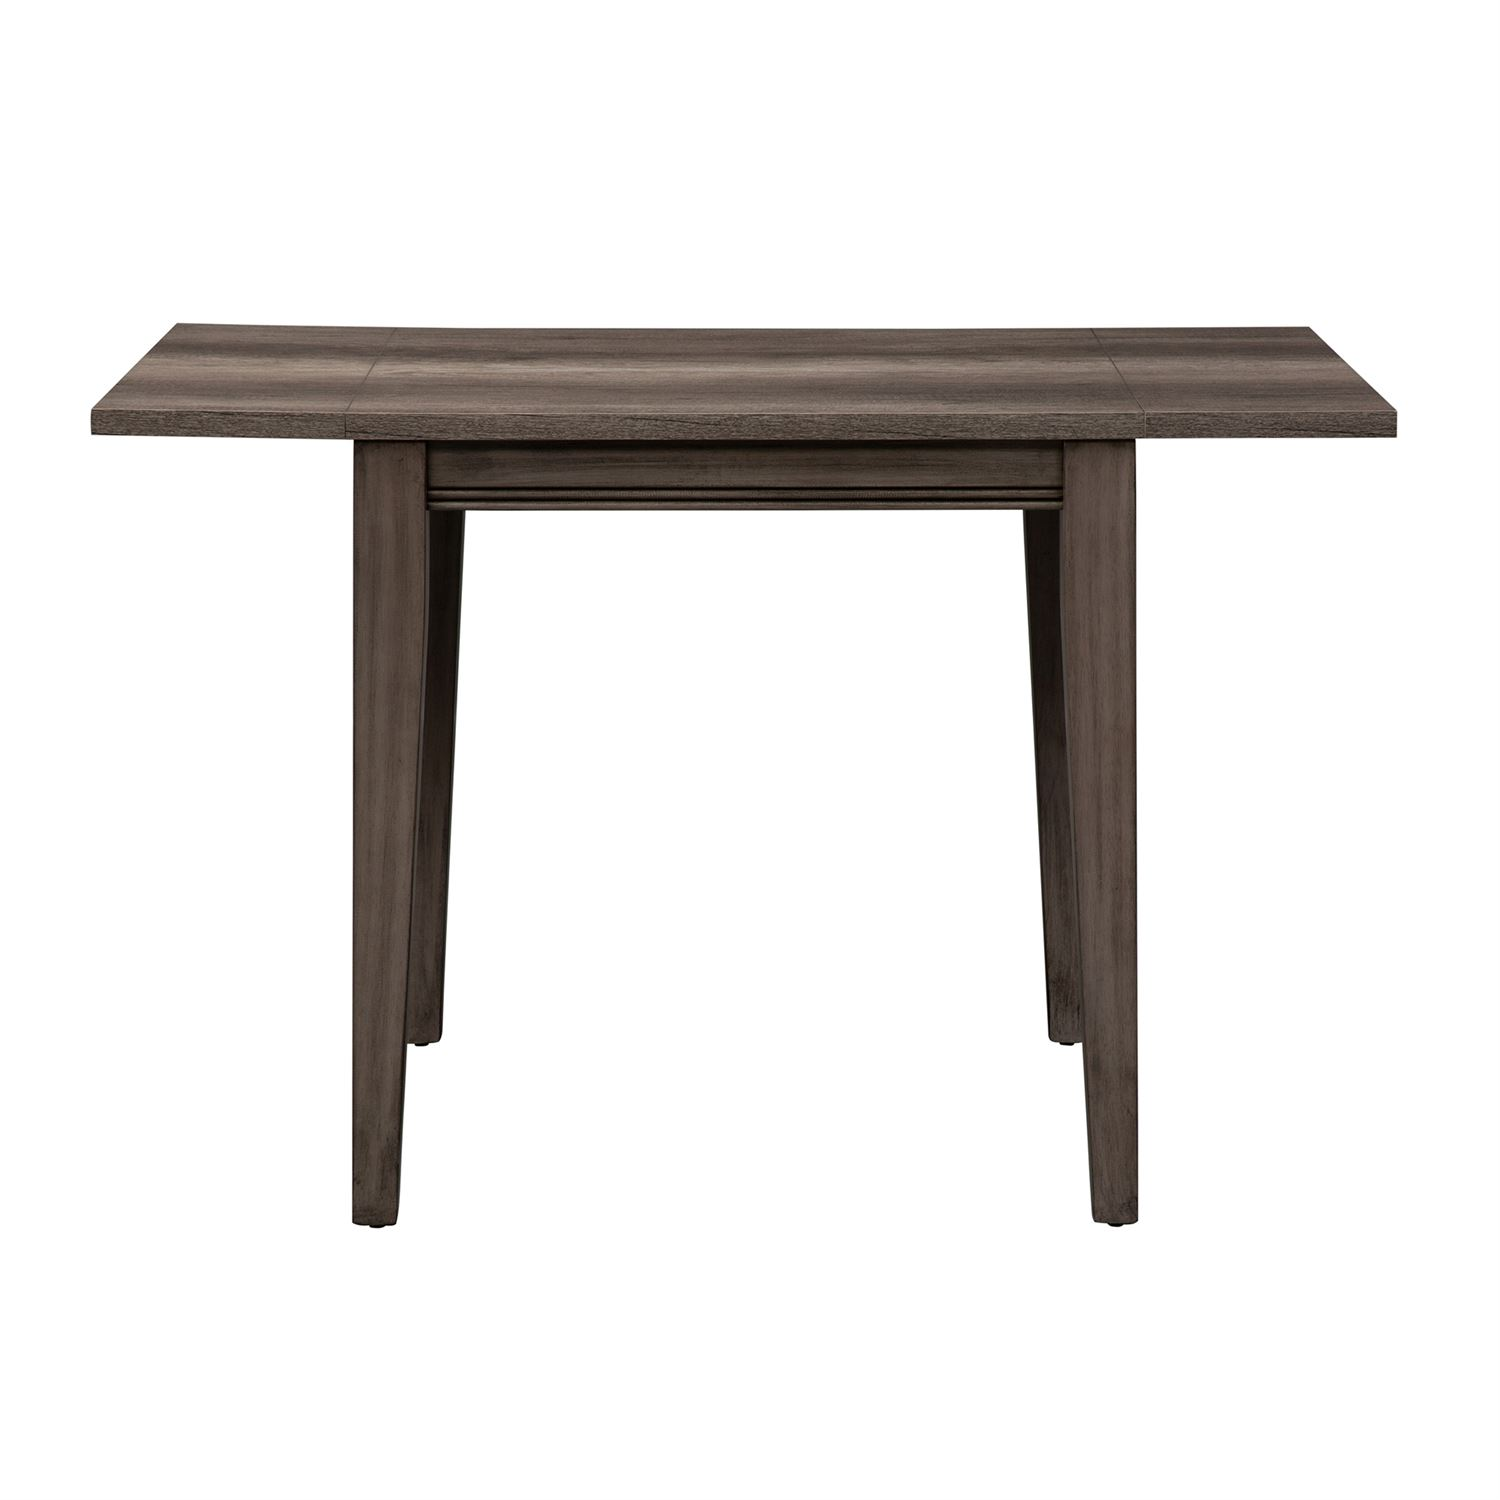 Tanners Creek opt 3 piece drop down table set